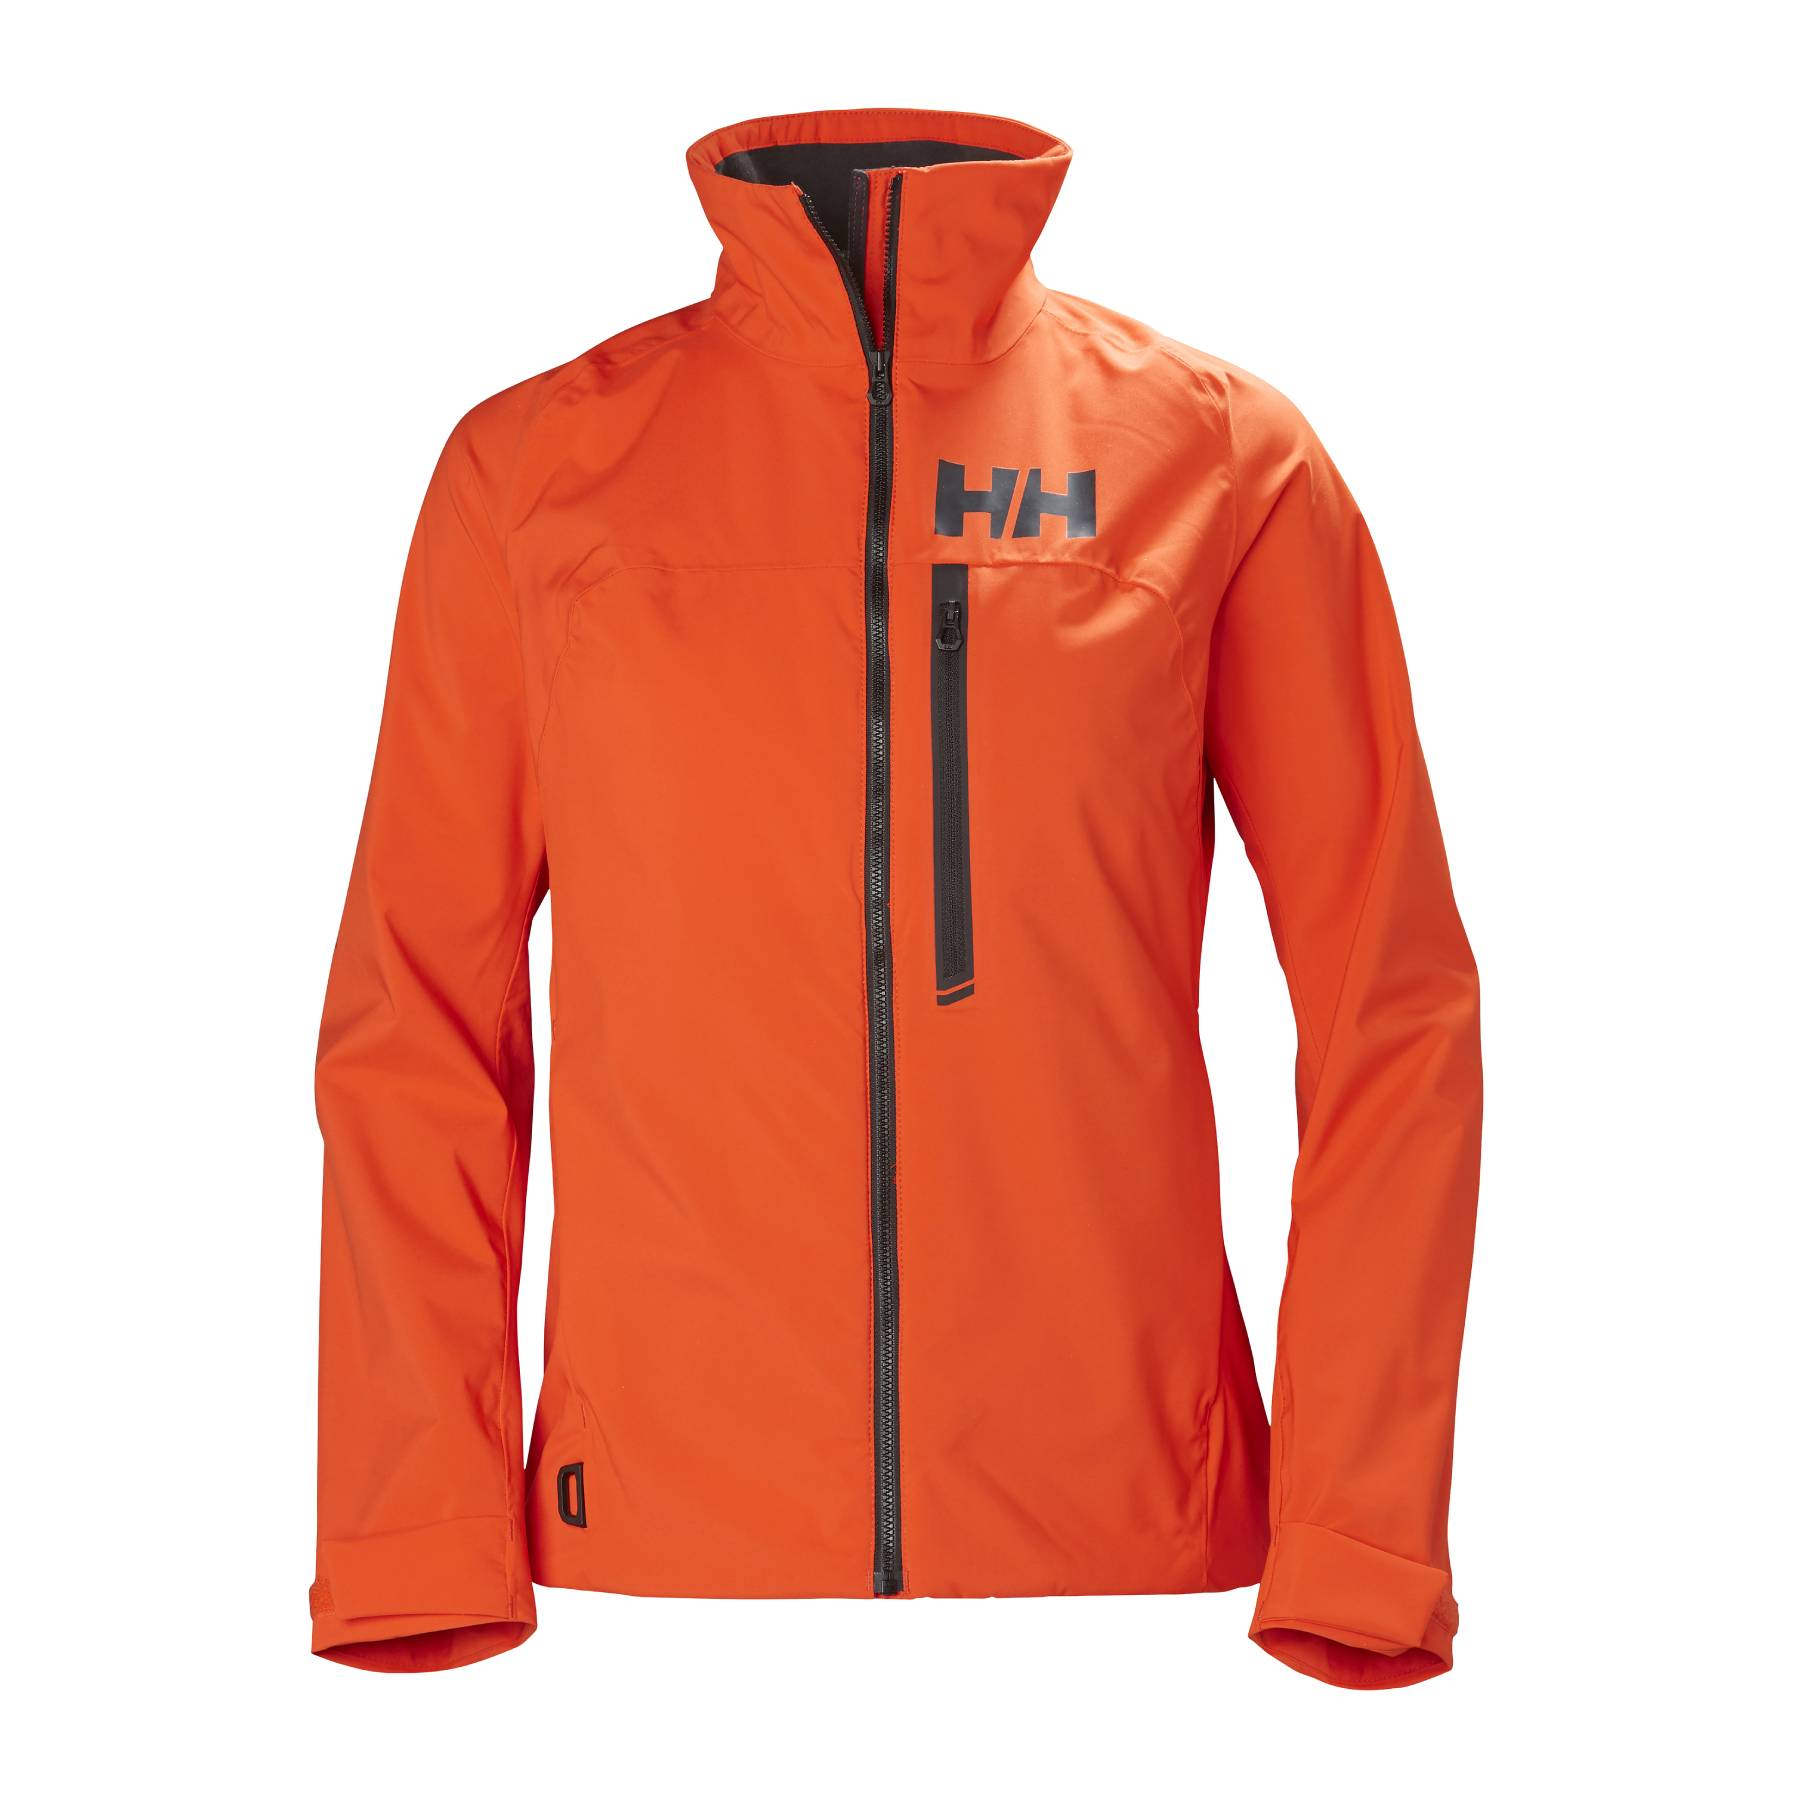 Women's Marine Layer Jacket